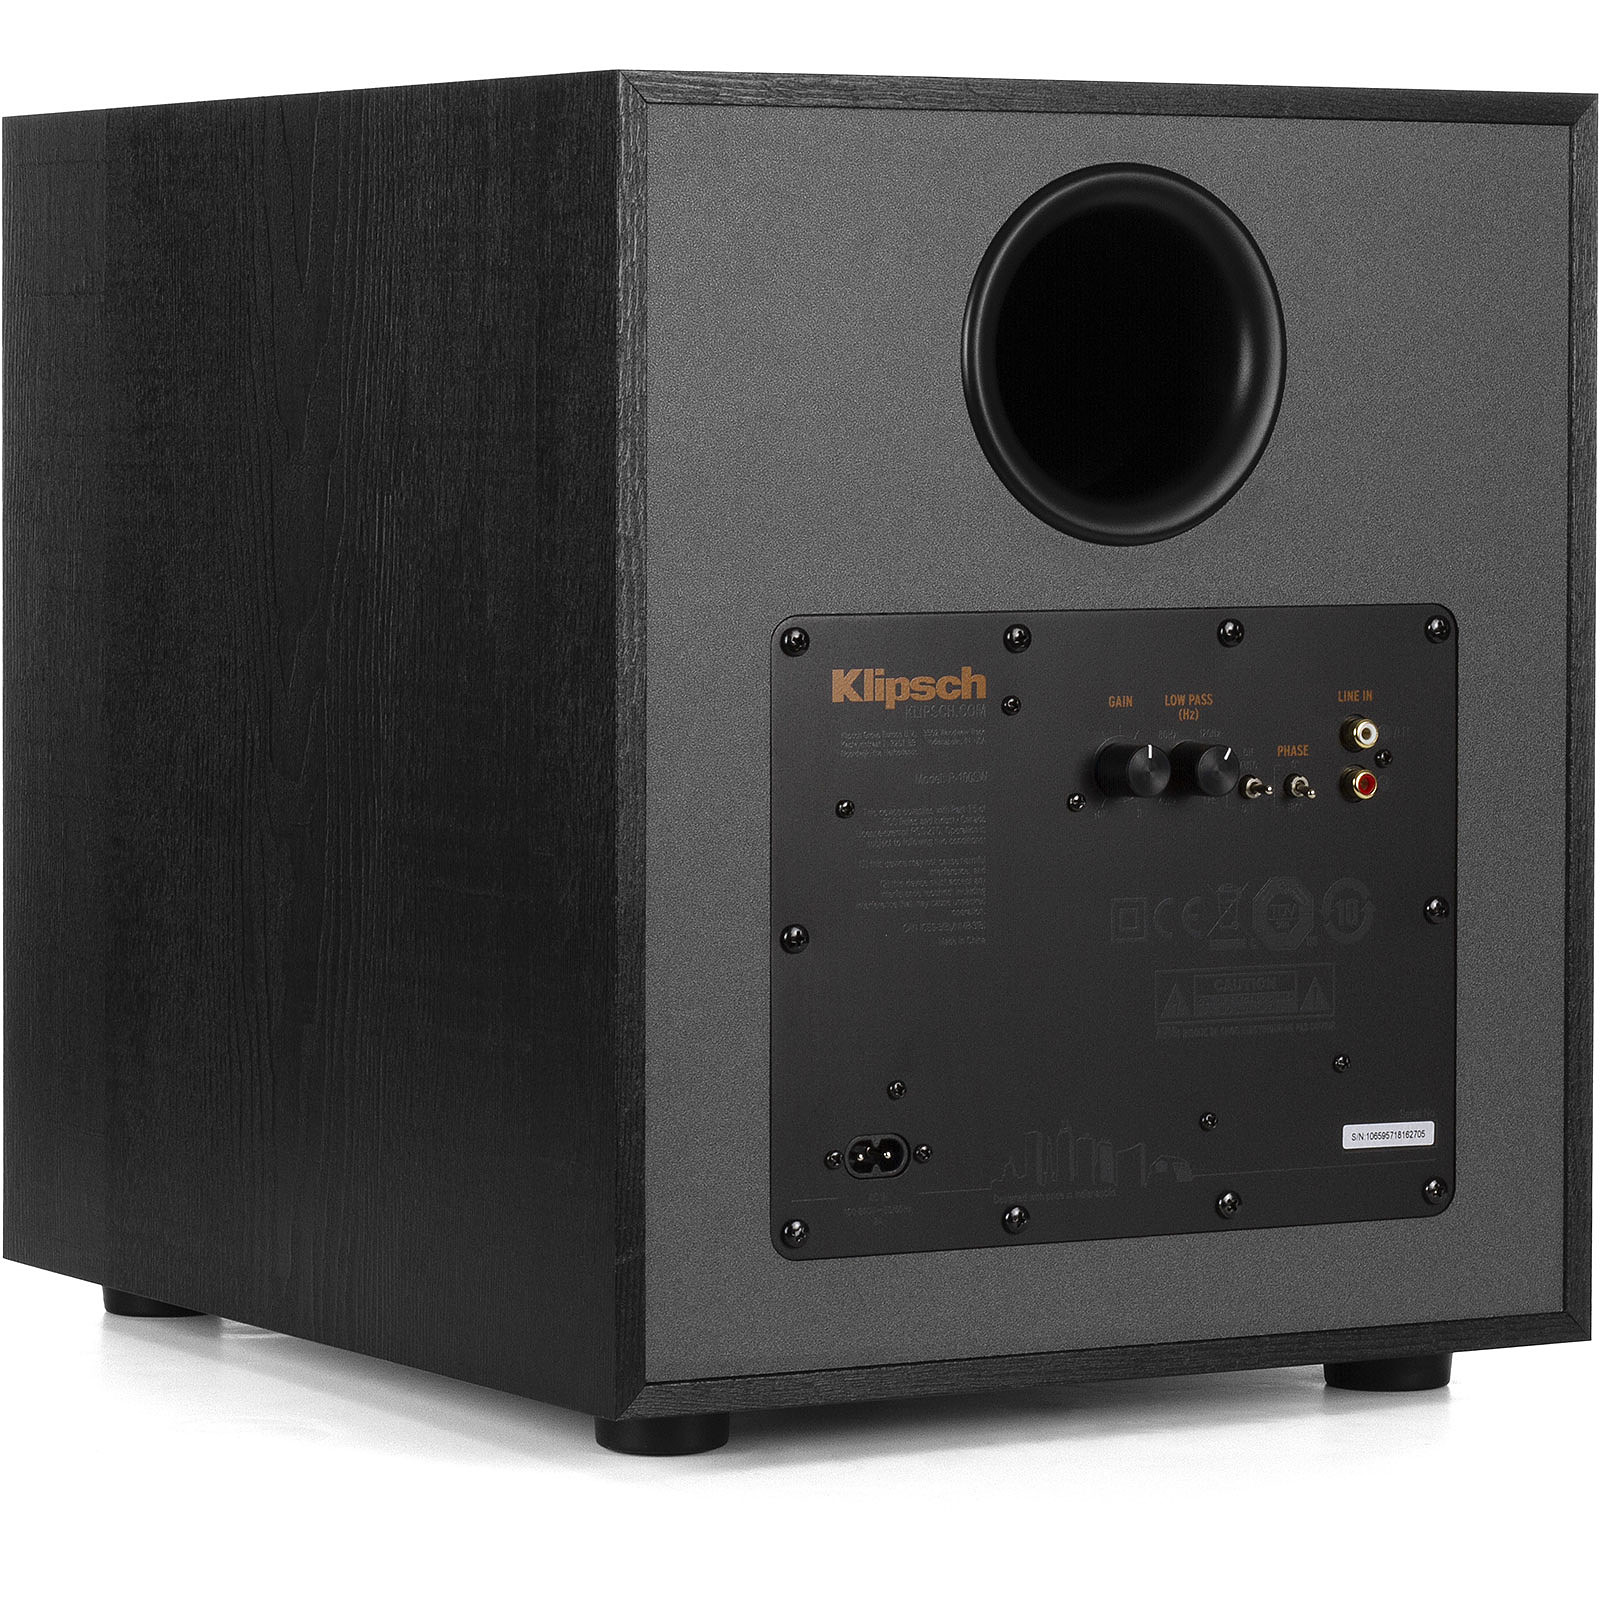 How to connect subwoofer to receiver without subwoofer output